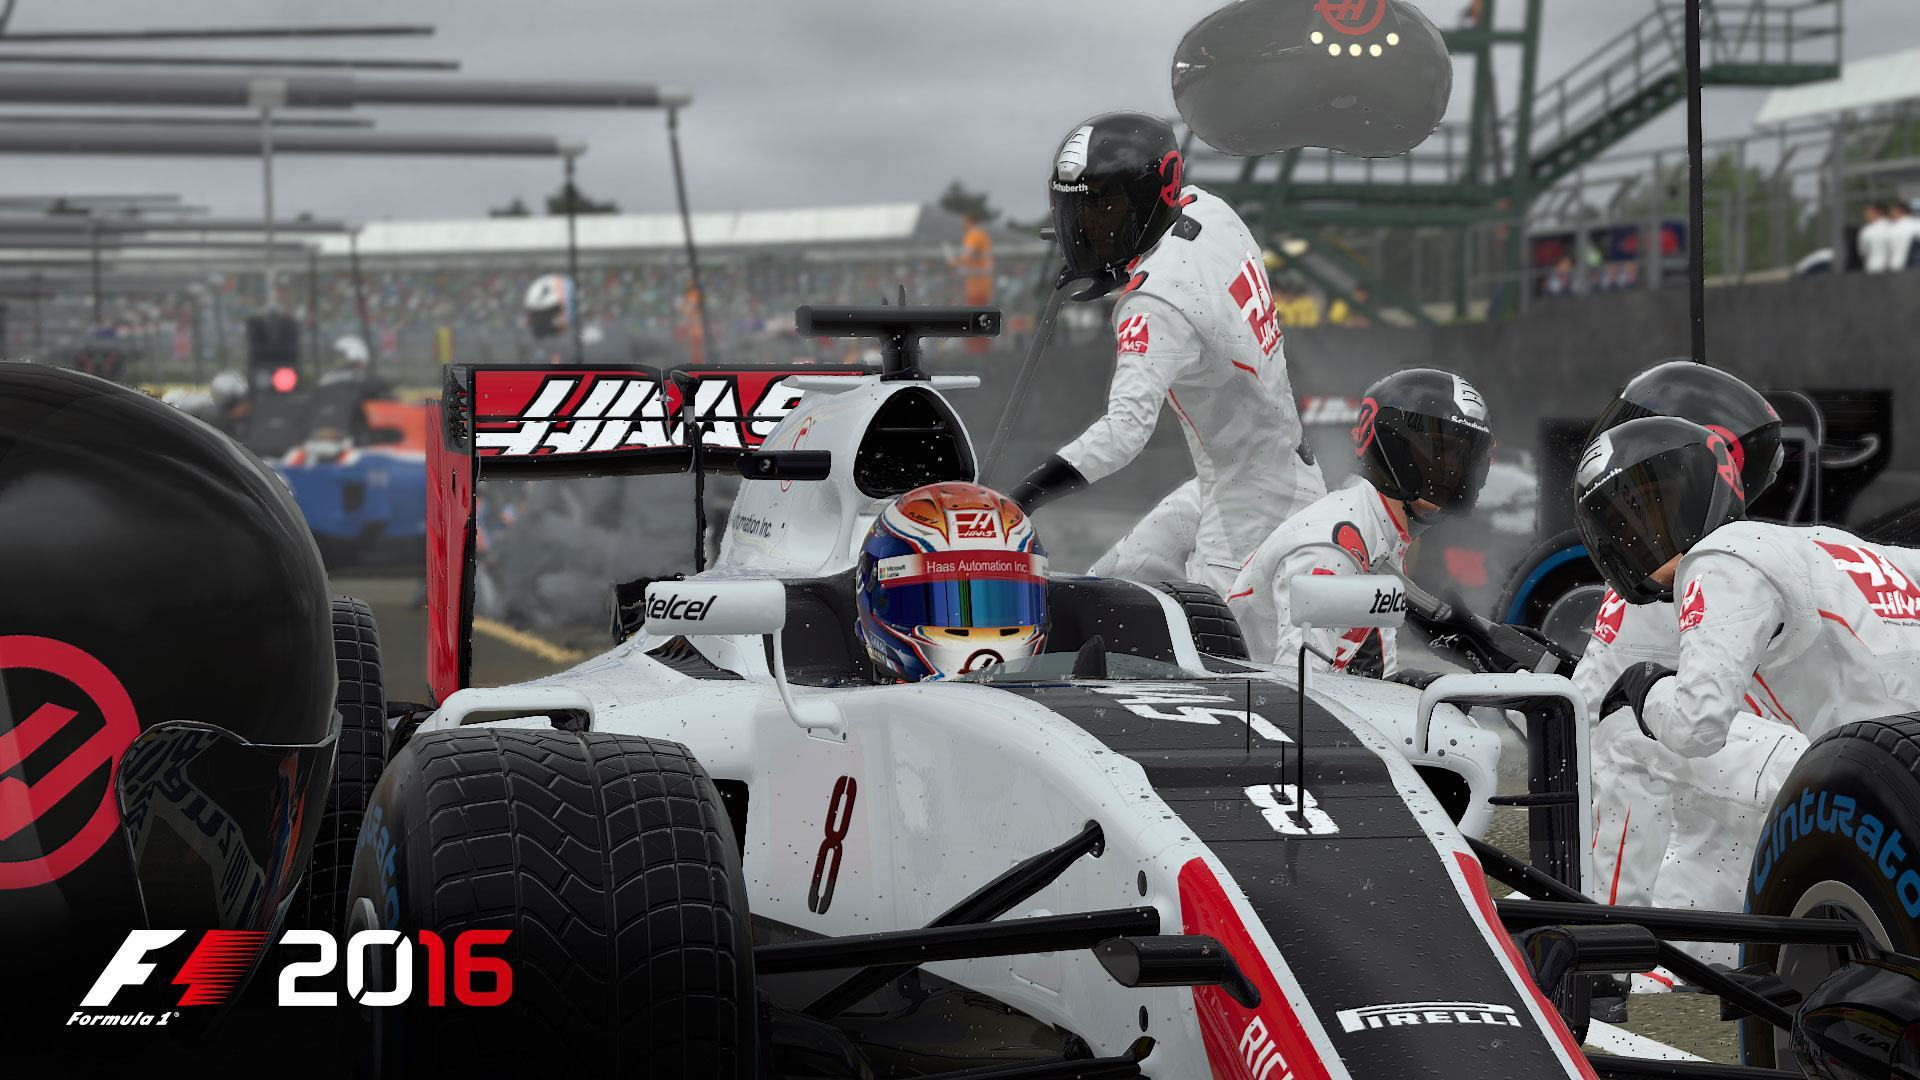 F1 2017 Beta Testing Applications Now Being Accepted On